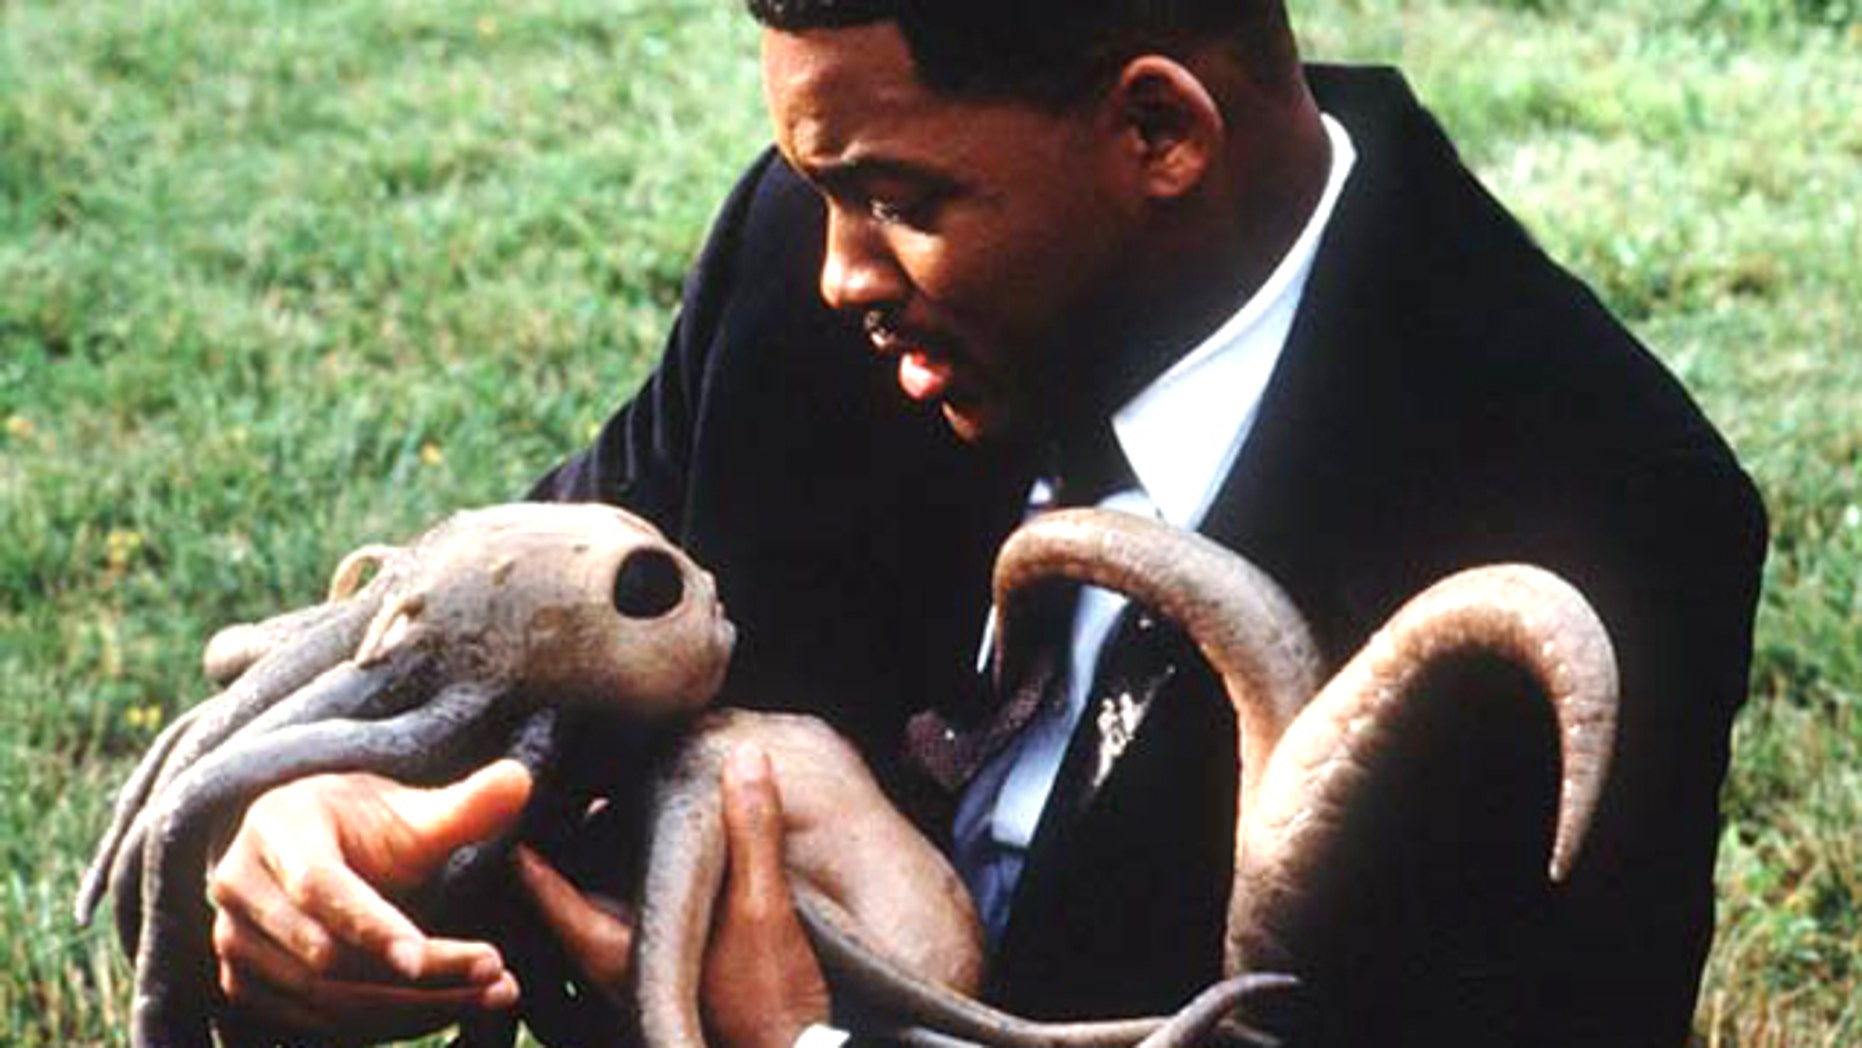 """Will Smith delivered an alien baby in the movie """"Men in Black."""" But would he baptize it?"""